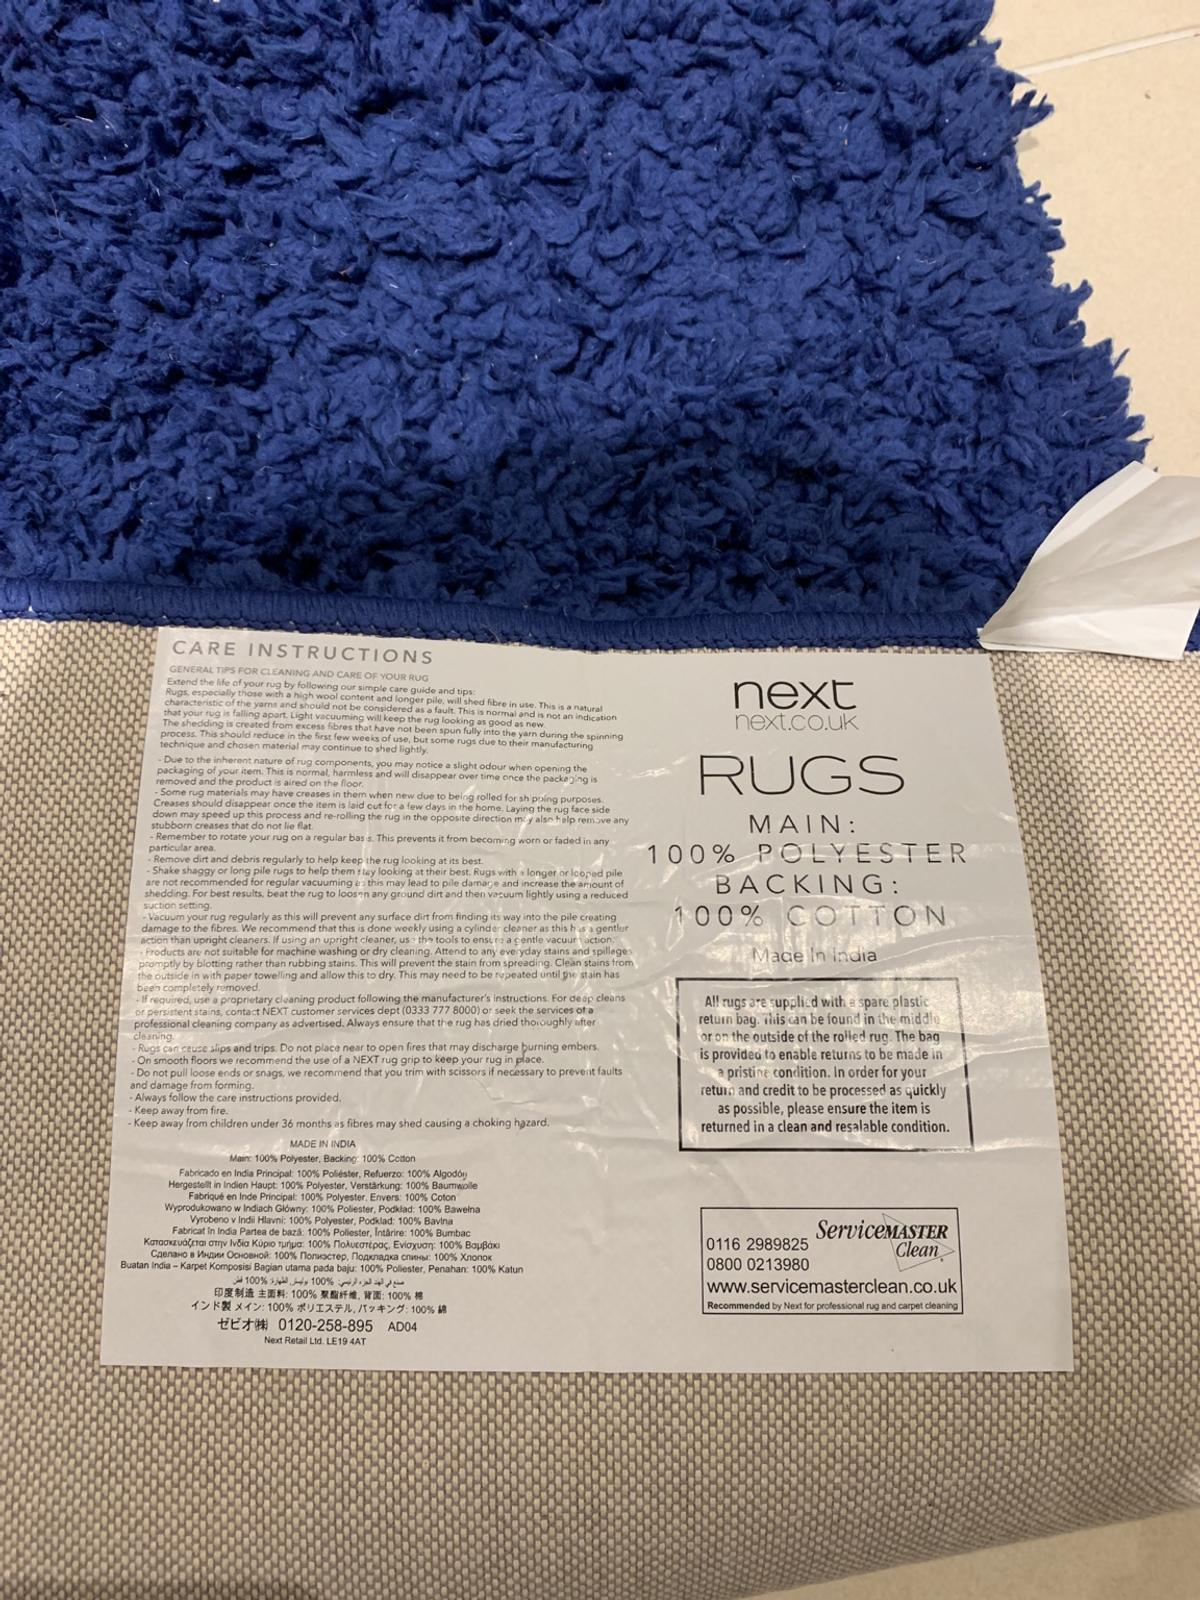 Rug - NEXT in CV7 Solihull for £10.00